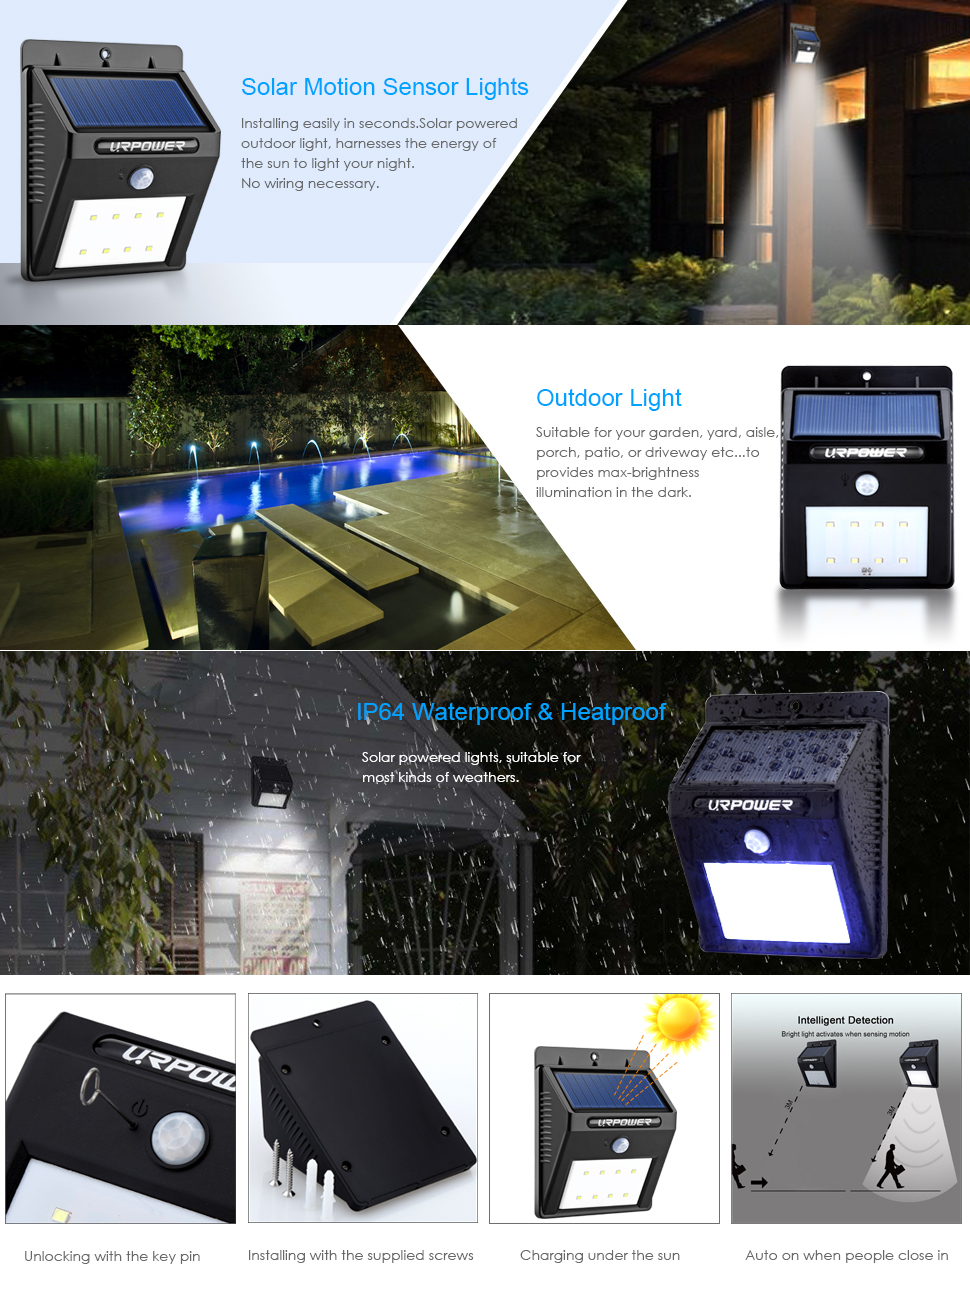 Urpower Solar Lights Wireless Waterproof Motion Sensor Outdoor Light Leds Used To Show Charging And Discharging Paths On Both Side Of 8 Led Is For Lamp Beads In One Not Please Install The Unit Face South Make Sure Panel Can